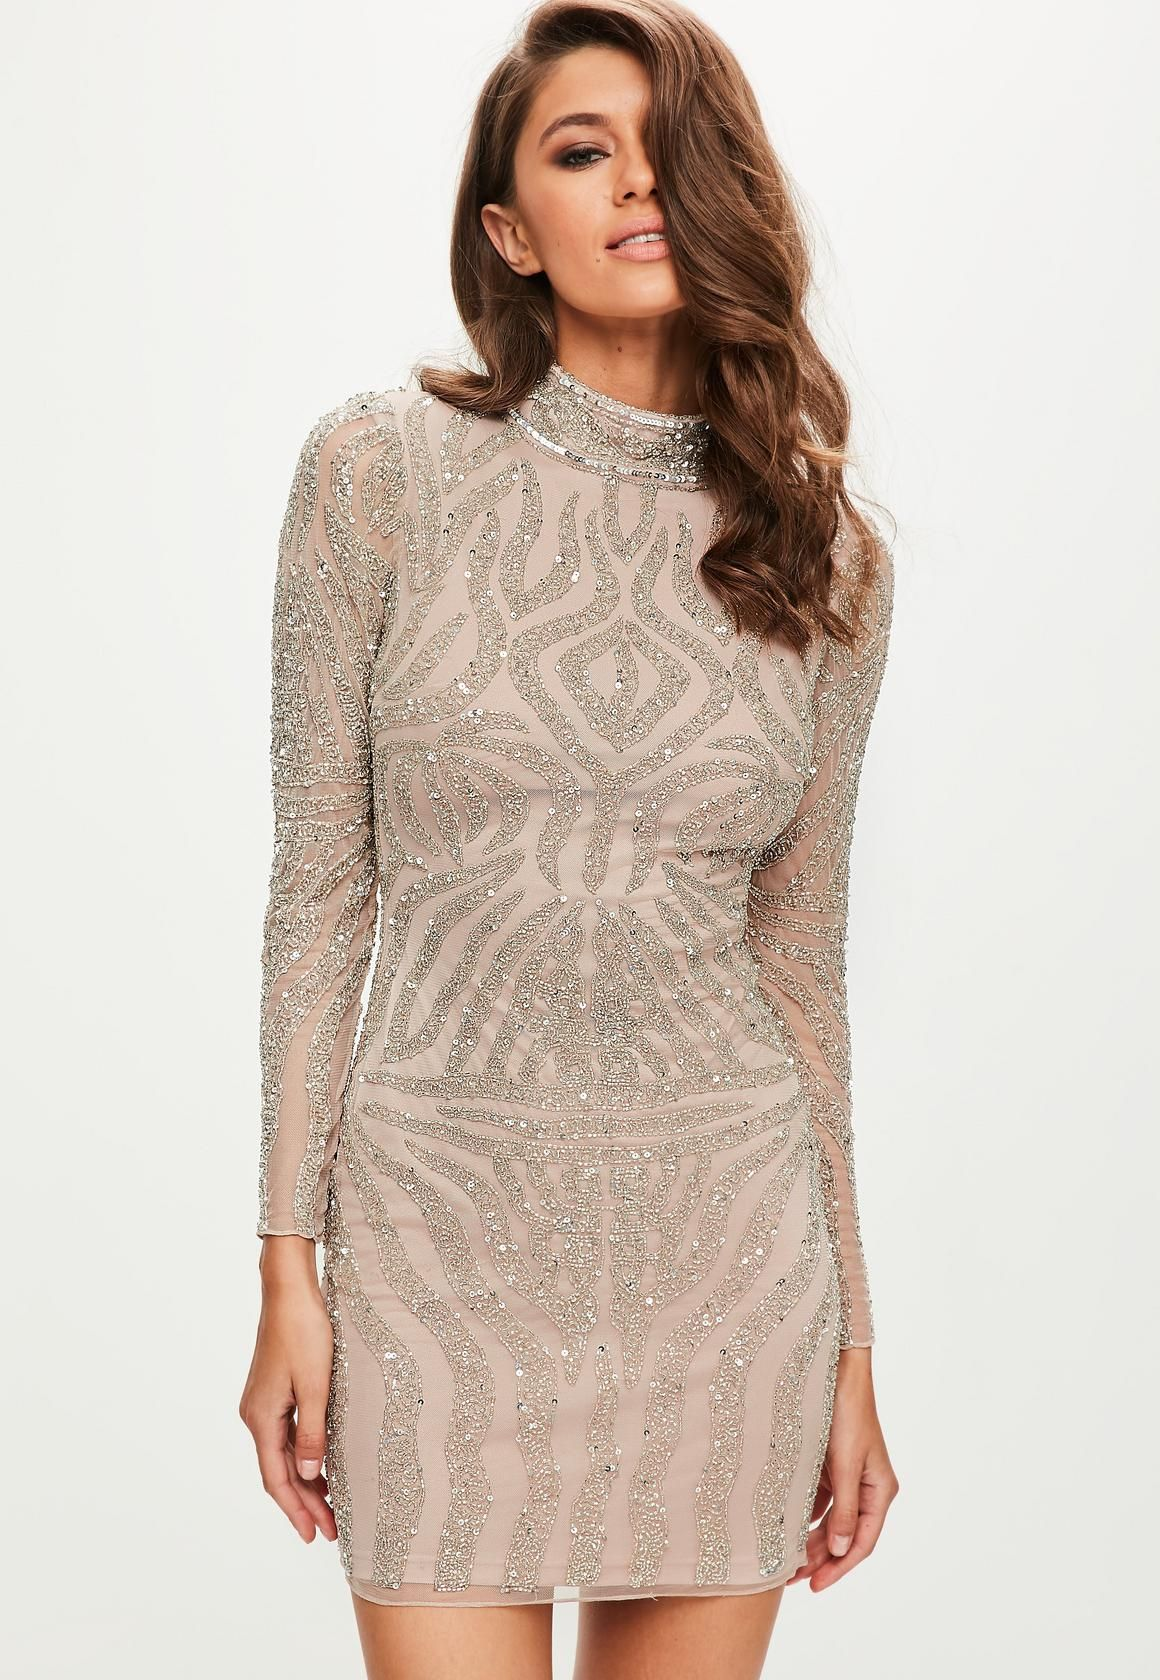 aa032086973 Missguided - Peace Love Nude High Neck Bodycon Dress